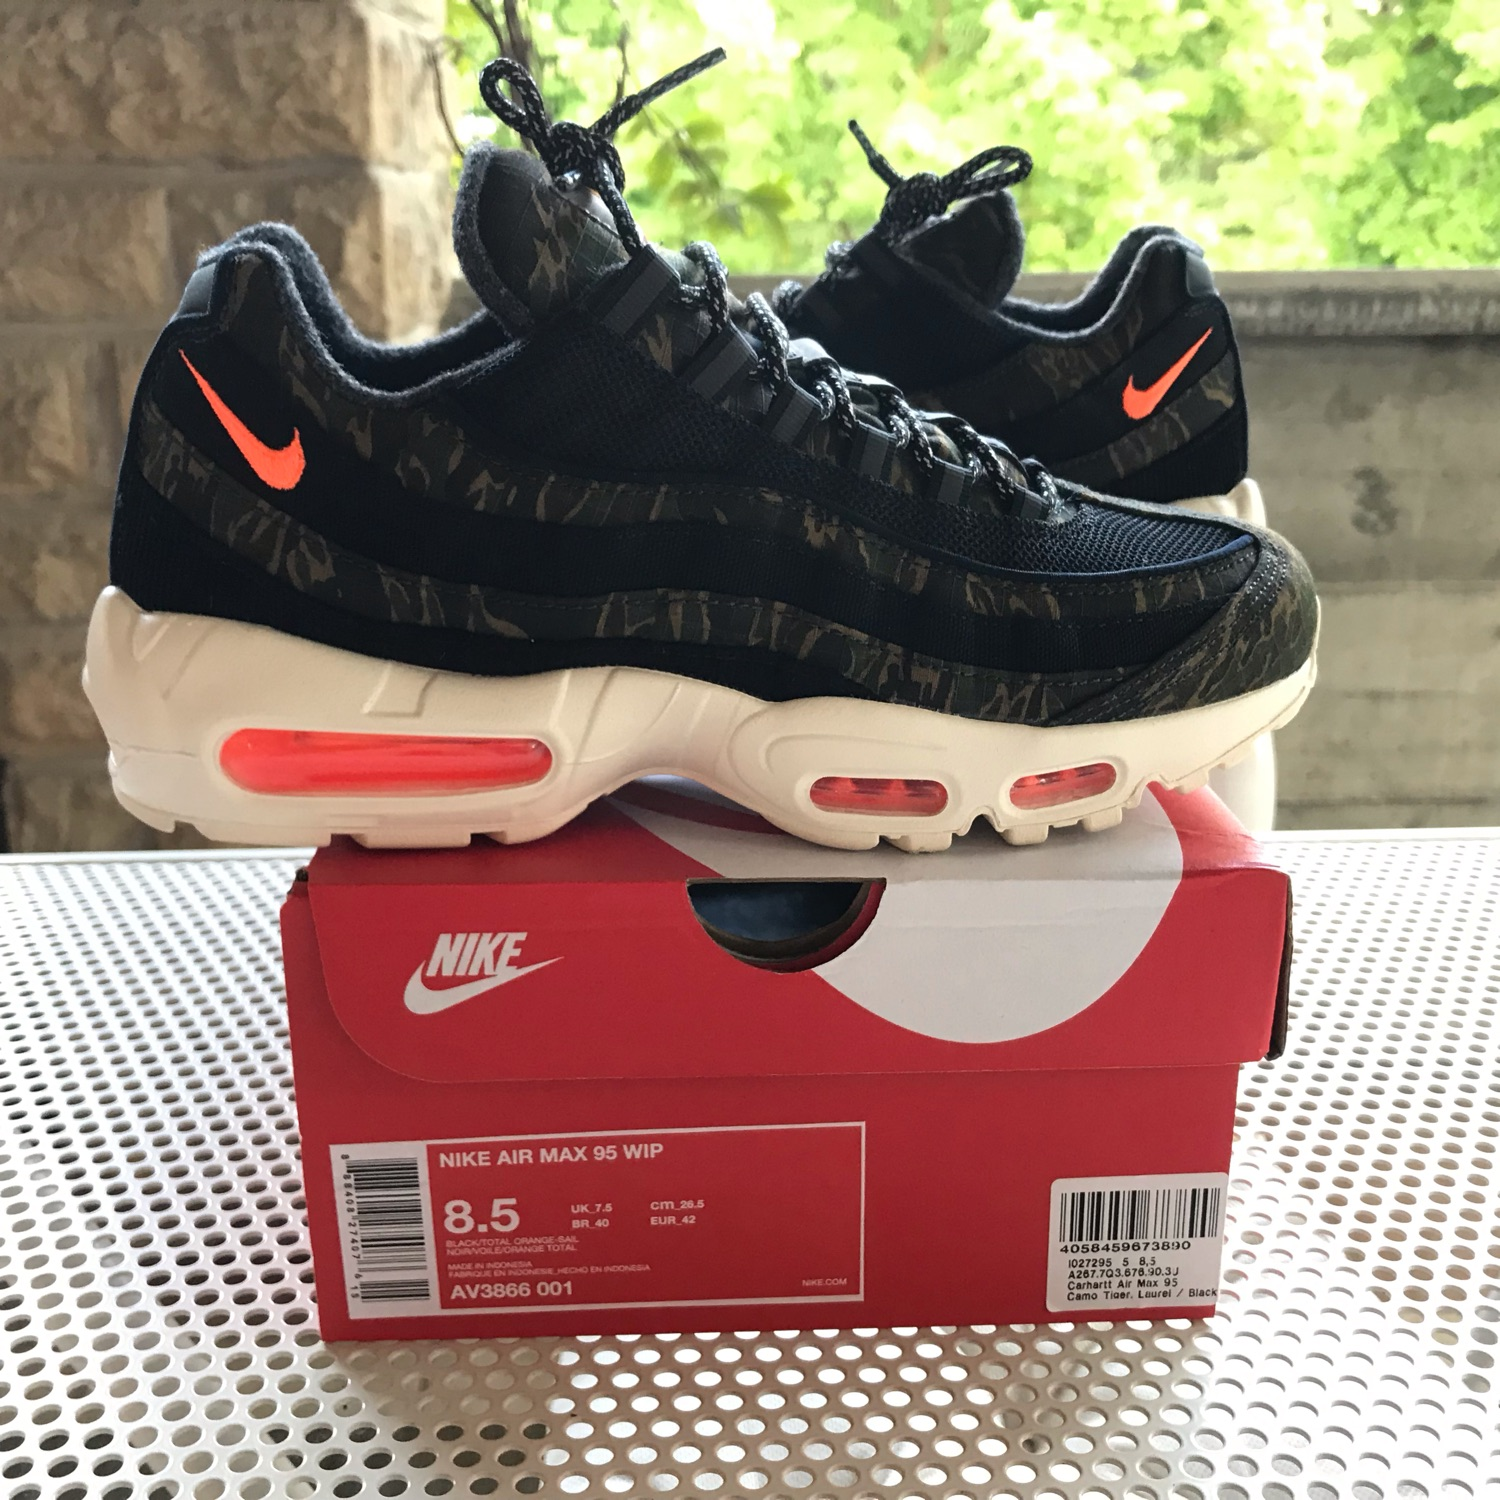 official photos 7df04 ca28b Nike Air Max 95 Carhartt Wip